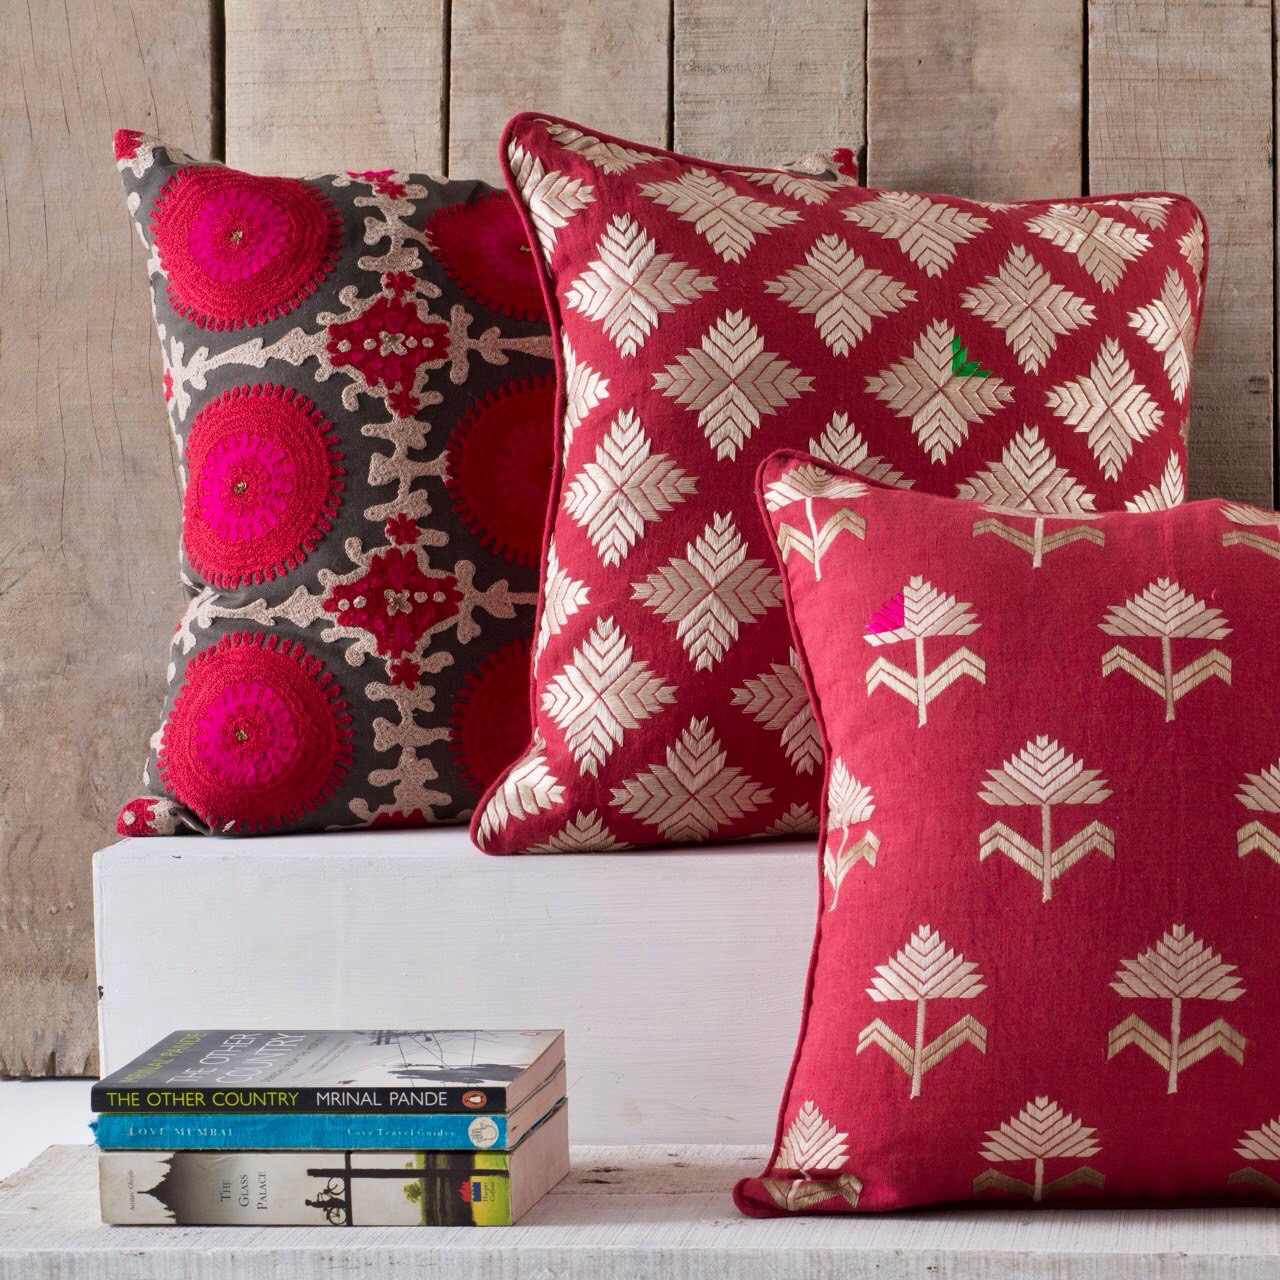 Phulkari embroidered cushions for a pop of colour in a Indian Minimalist's living room